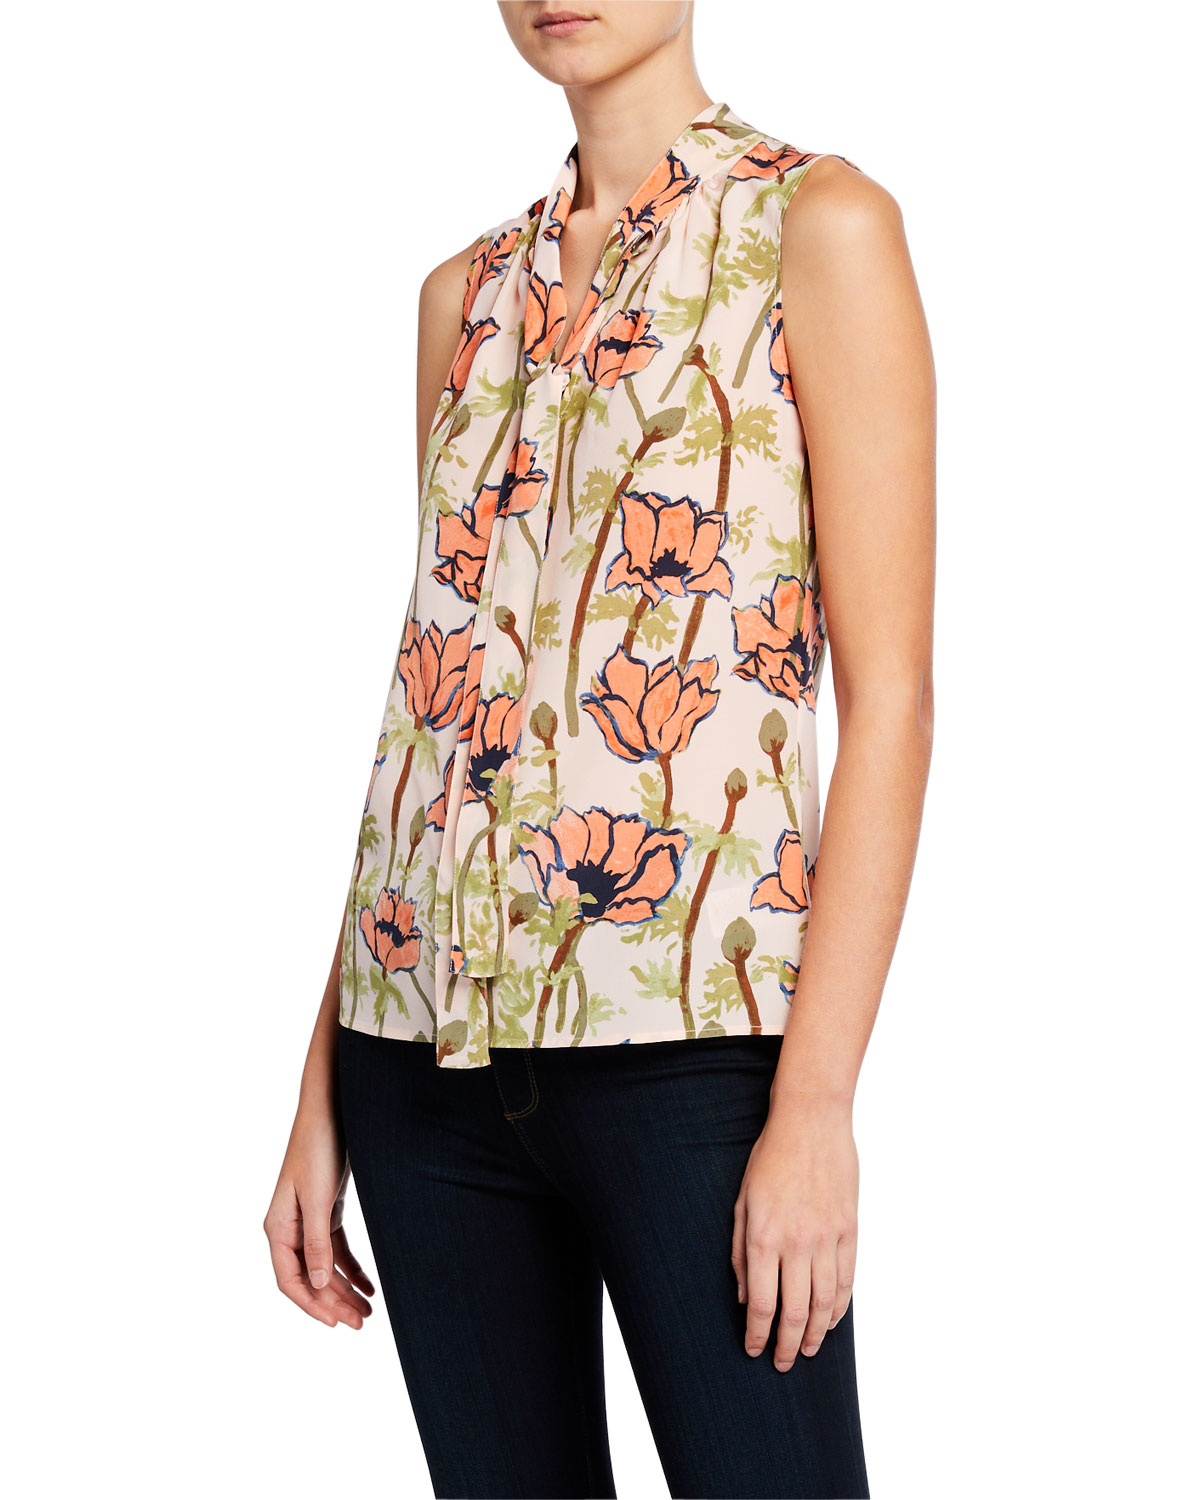 7594ffaa565817 Tory Burch Floral-Printed Sleeveless Tie-Neck Bow Blouse In Pink Poppies  Bloom